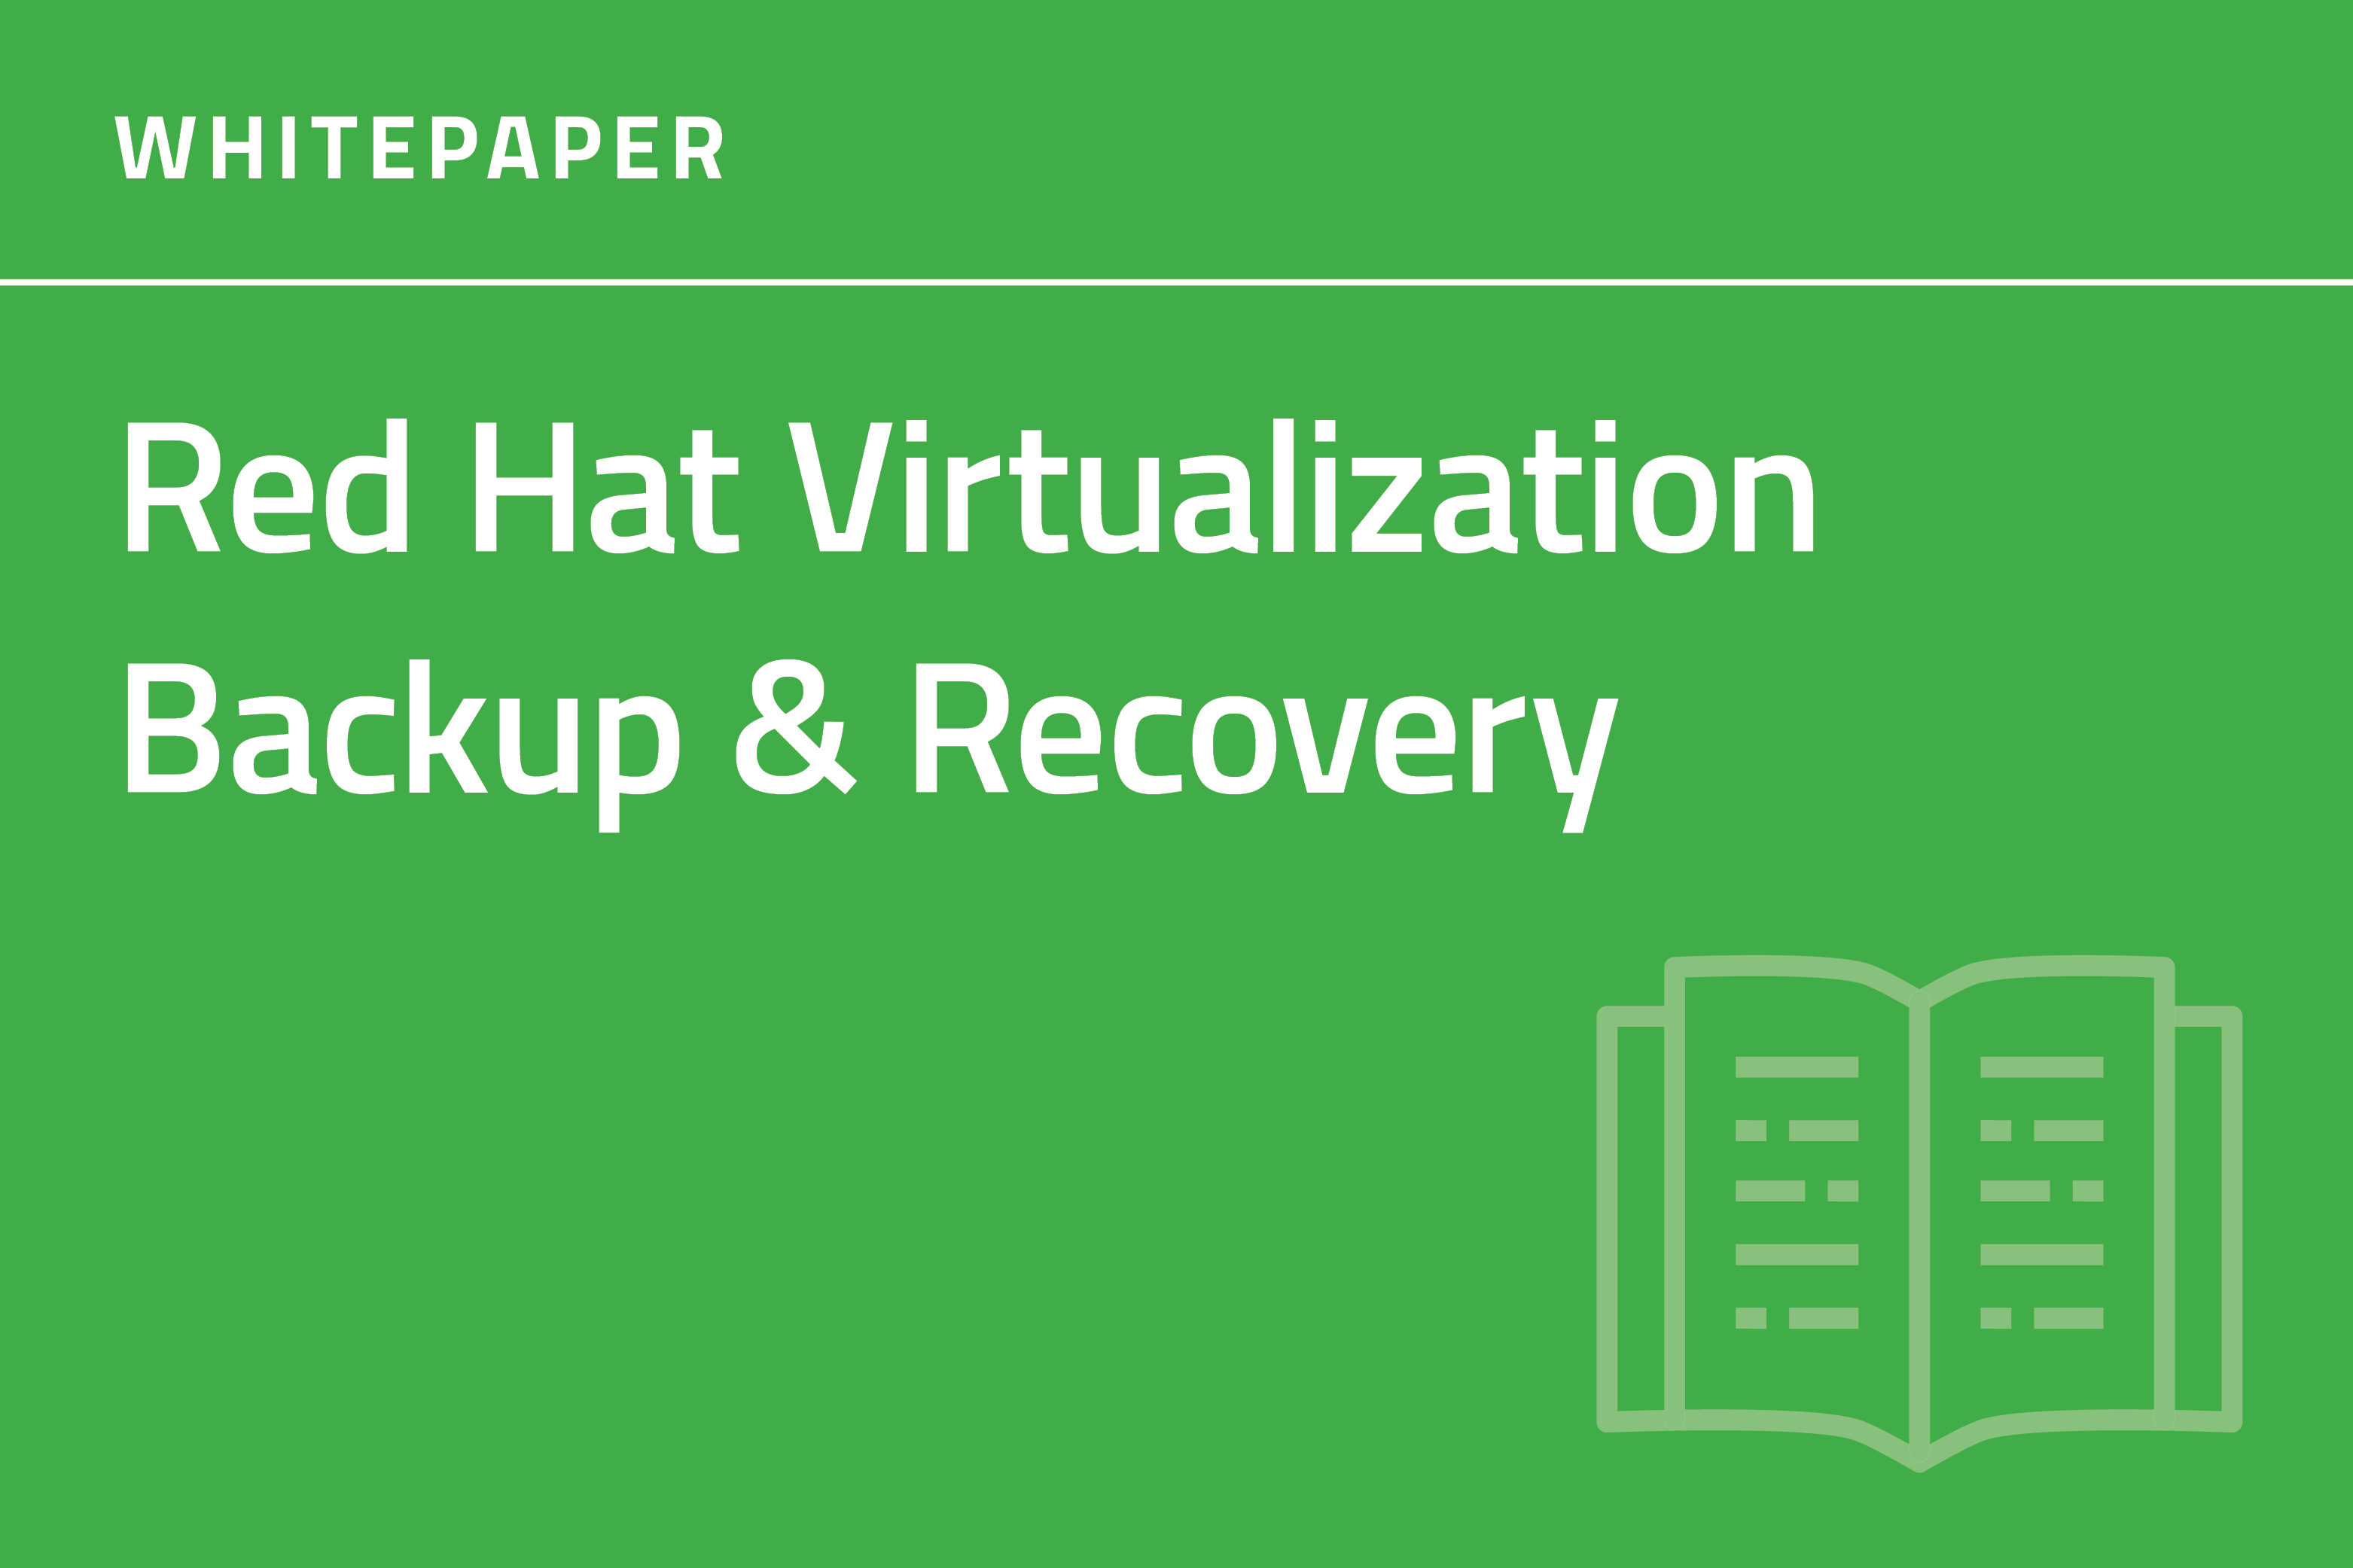 RHV Backup and Recovery Whitepaper